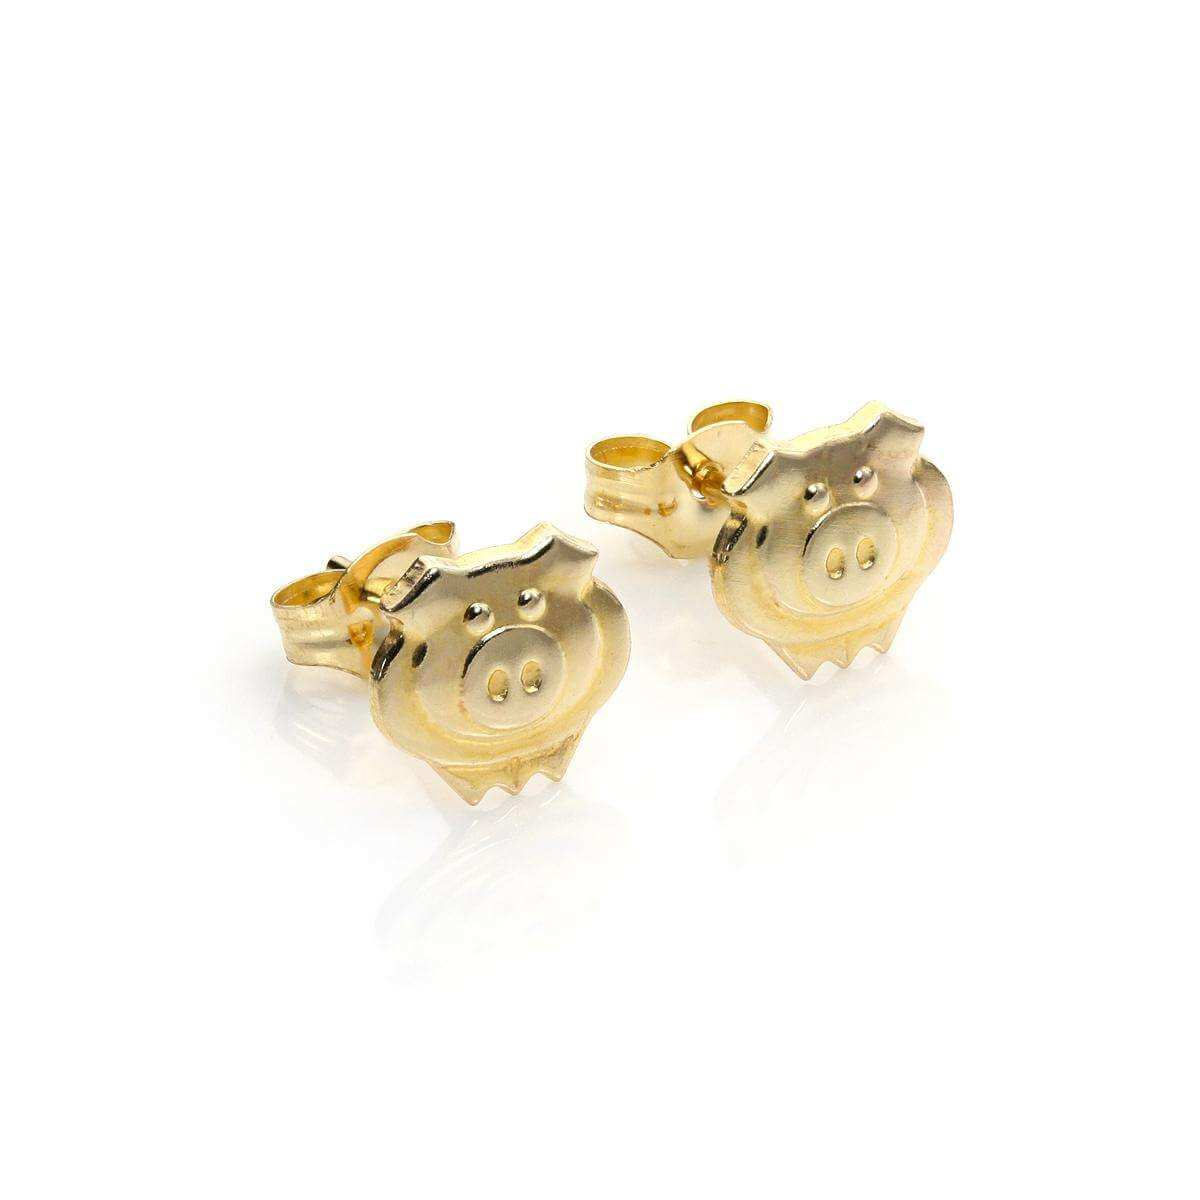 9ct Gold Cute Pig Stud Earrings